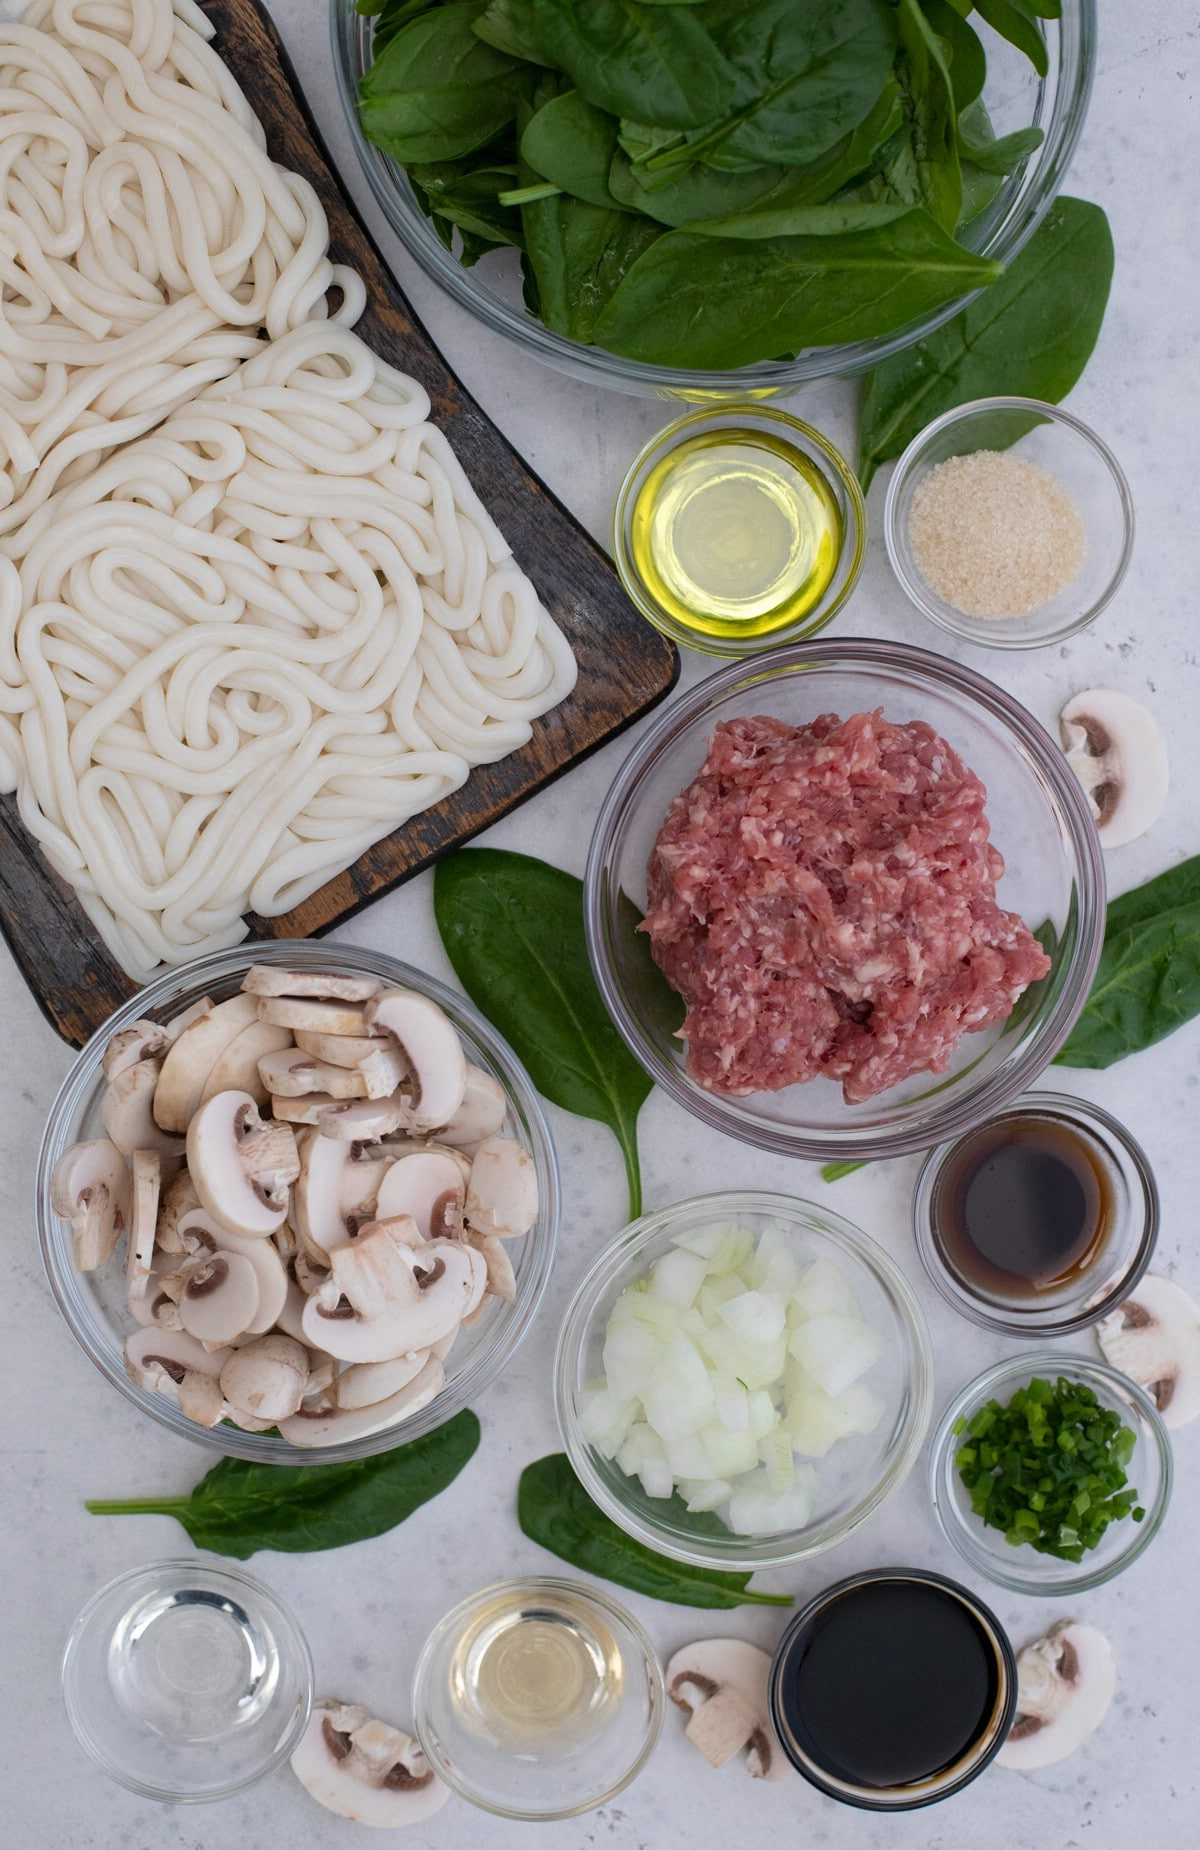 Ingredients for udon noodle stir fry on white table